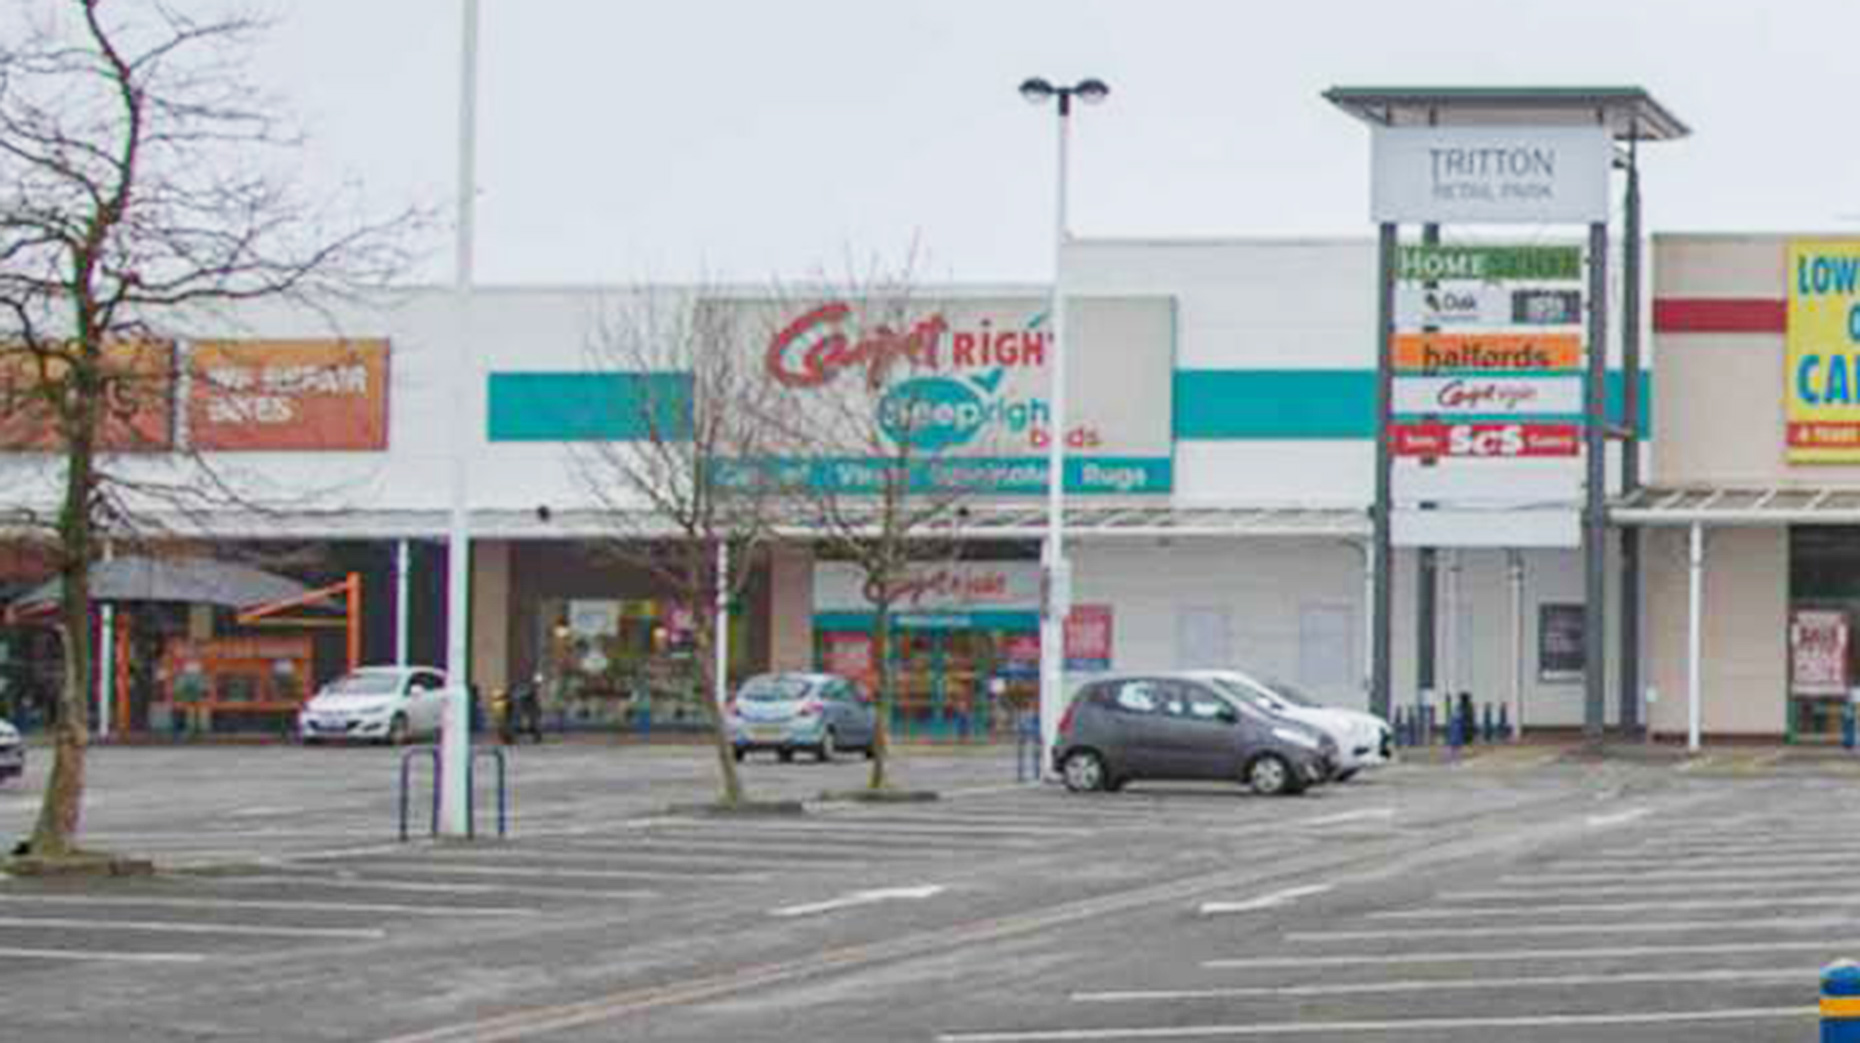 Hundreds of jobs at risk as Carpetright closes stores